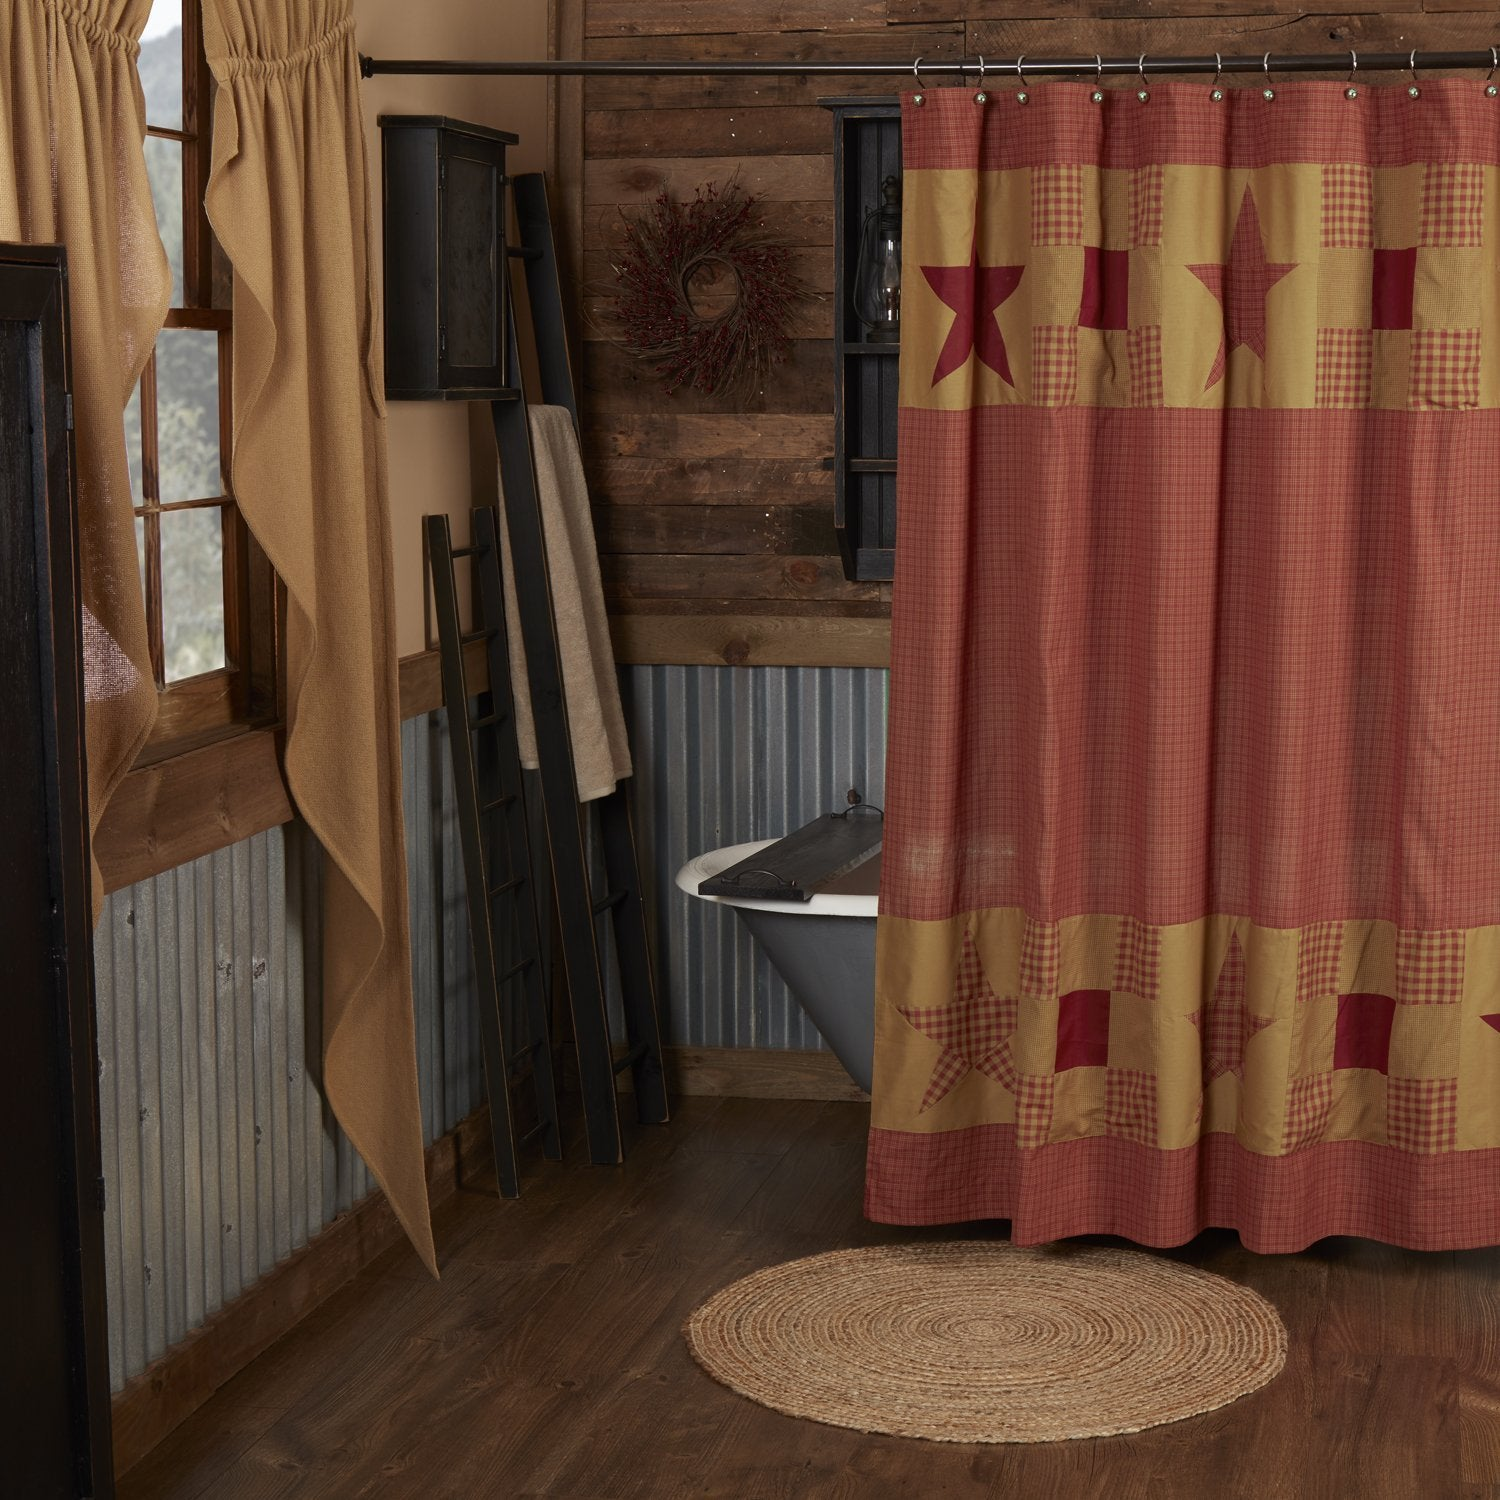 Ninepatch Star Shower Curtain w/ Patchwork Borders.